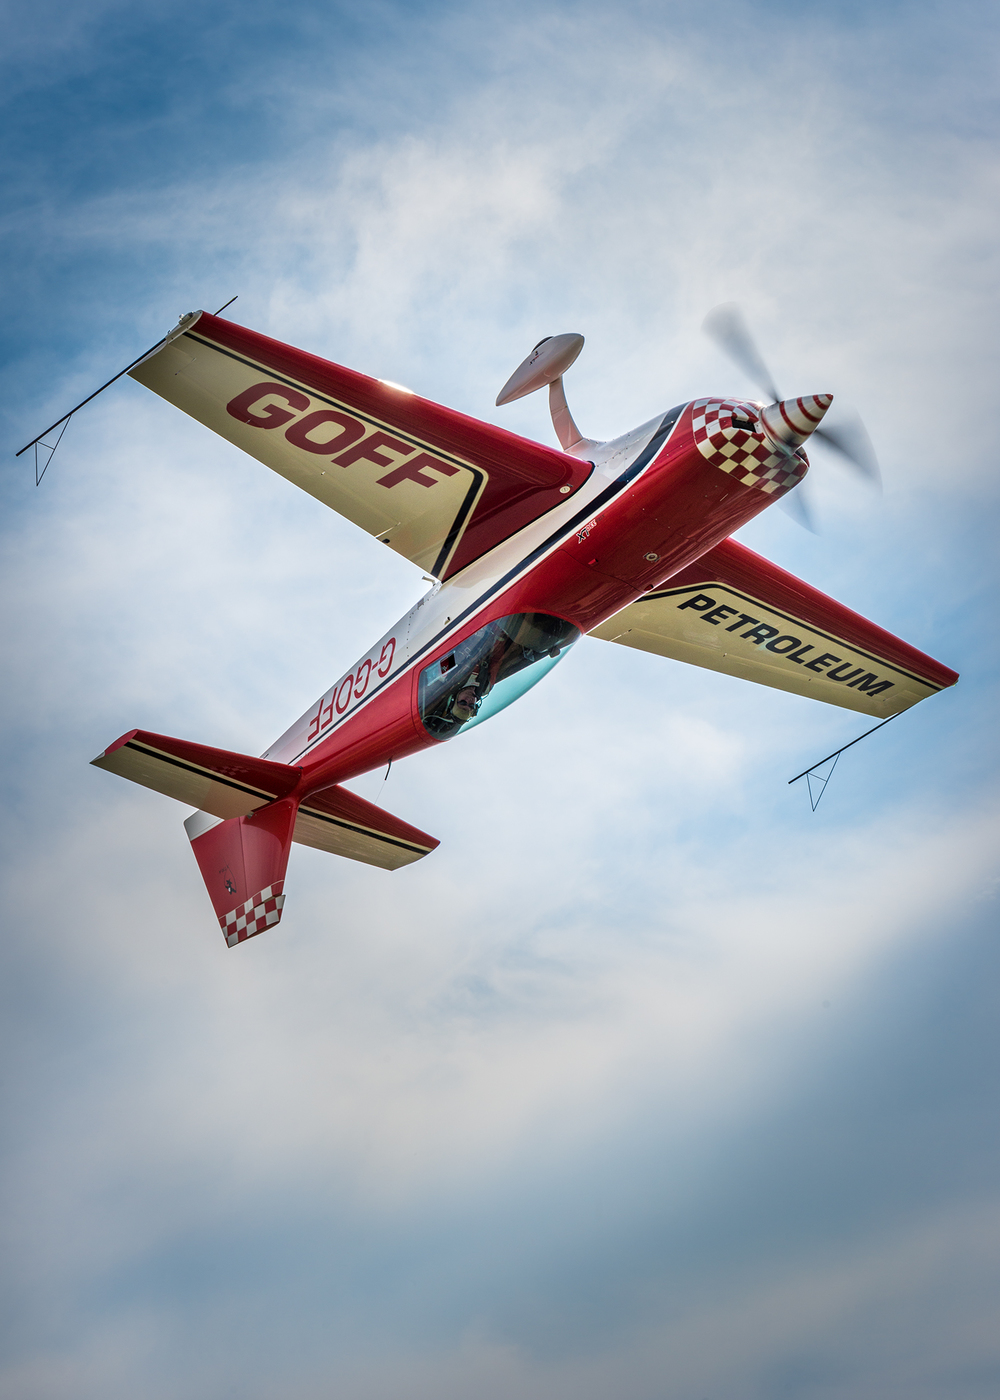 The GOFF PETROLEUM Extra is extremely agile, as demonstrated here by long time stunt pilot Mark